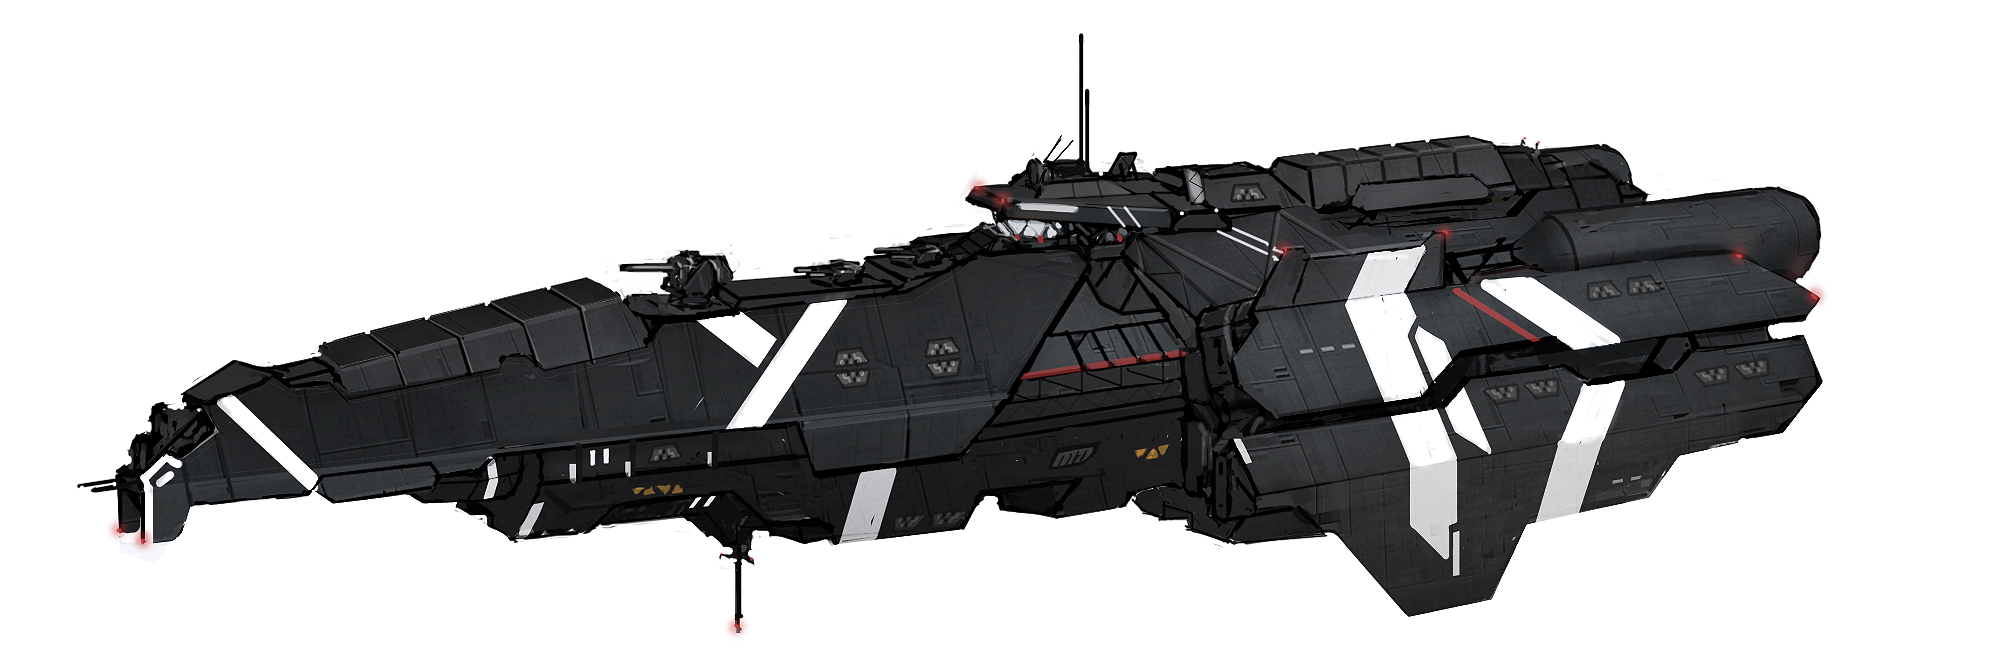 Centurion-class Hunter-Killer Destroyer